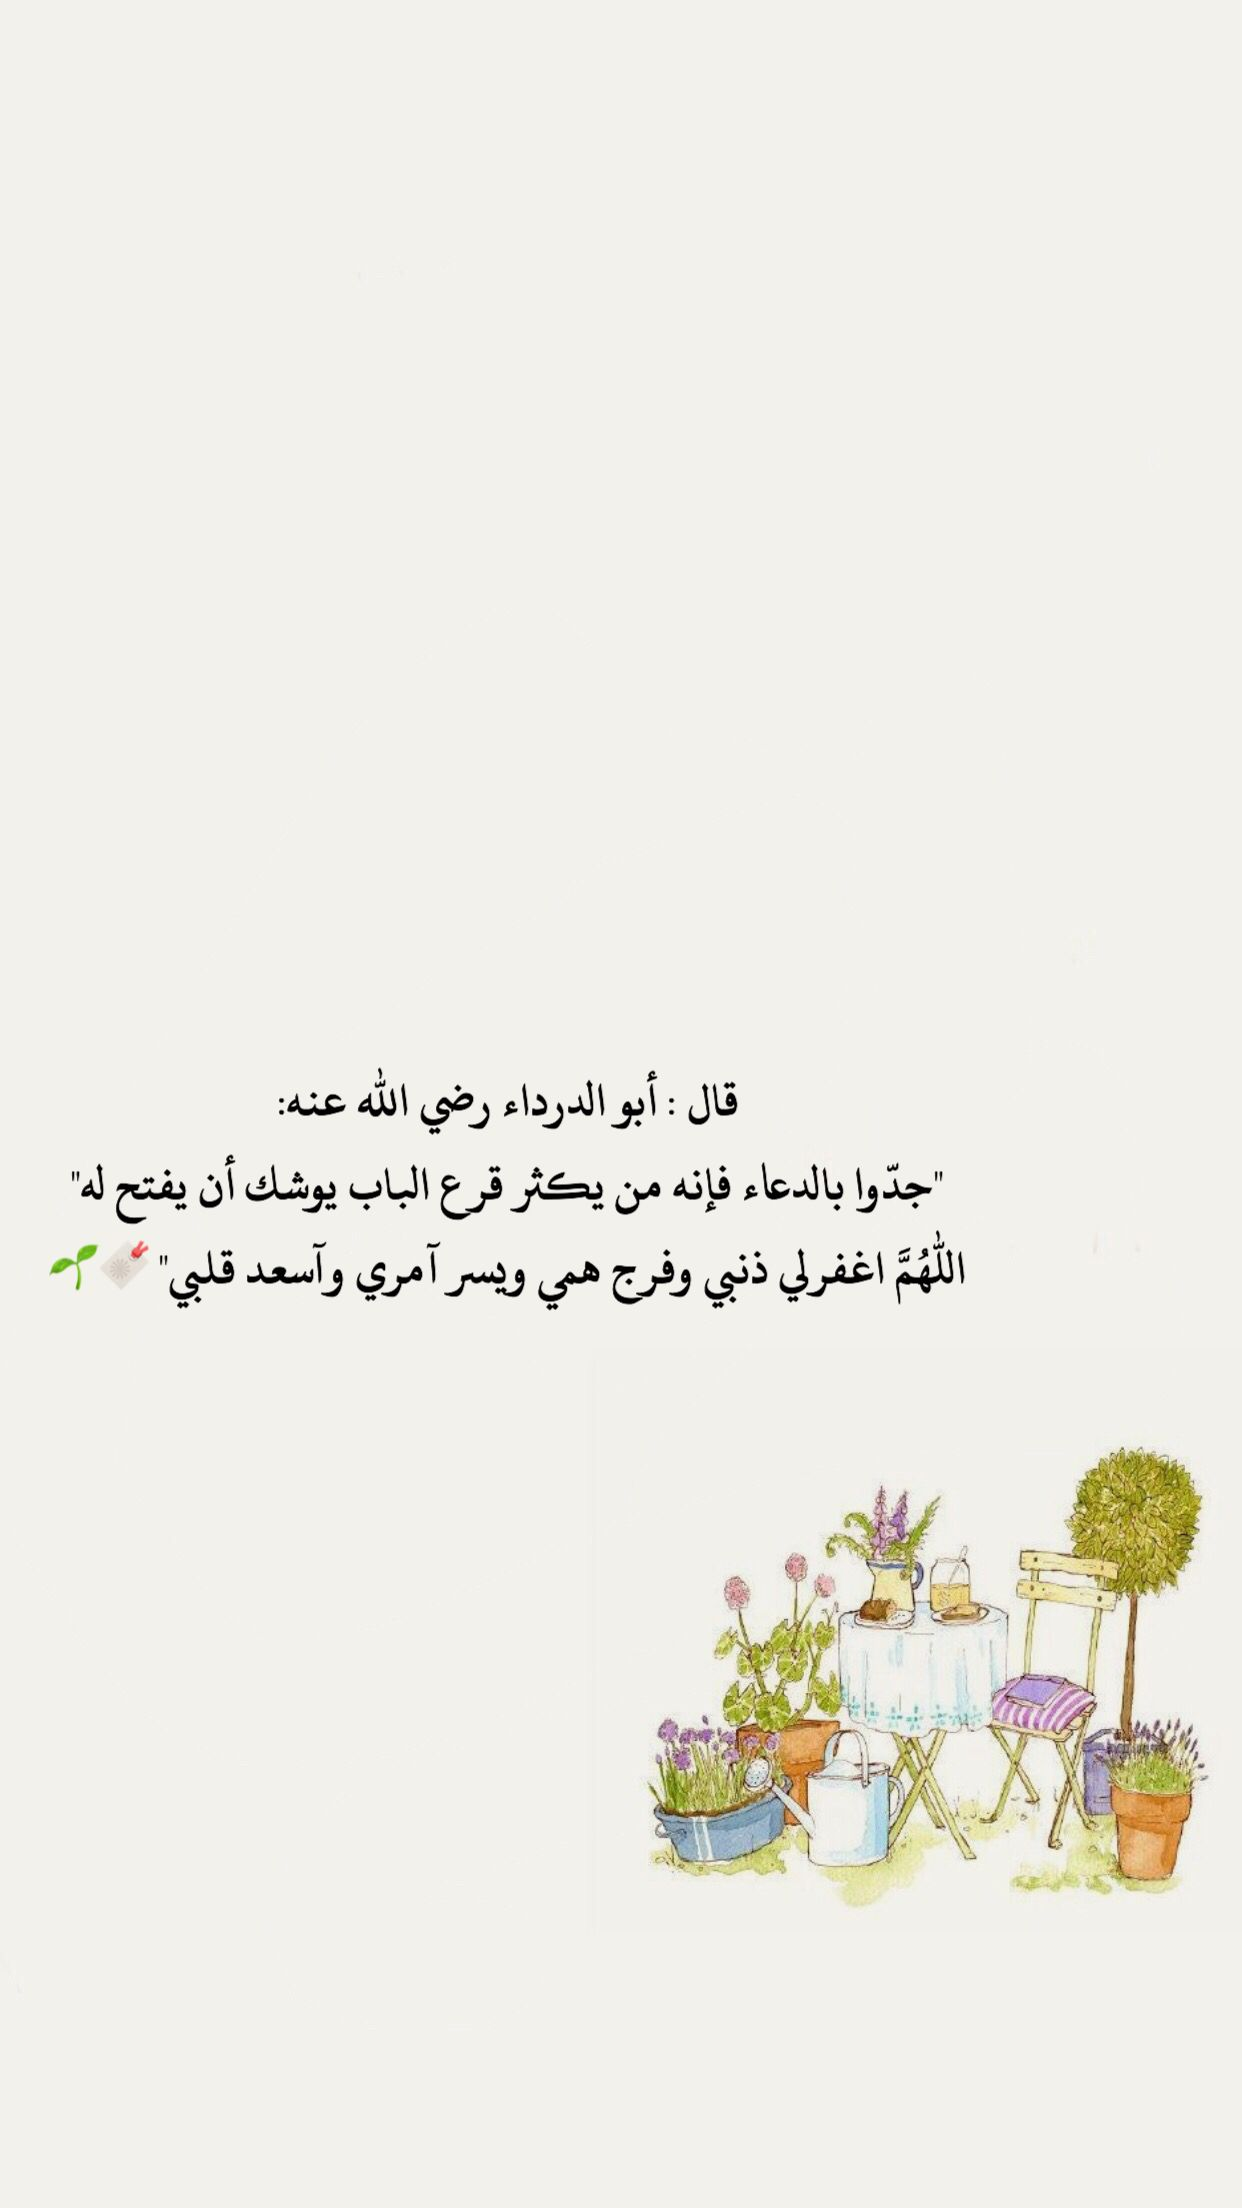 Pin By Malak On Doua Islam Words Word Search Puzzle Word Search